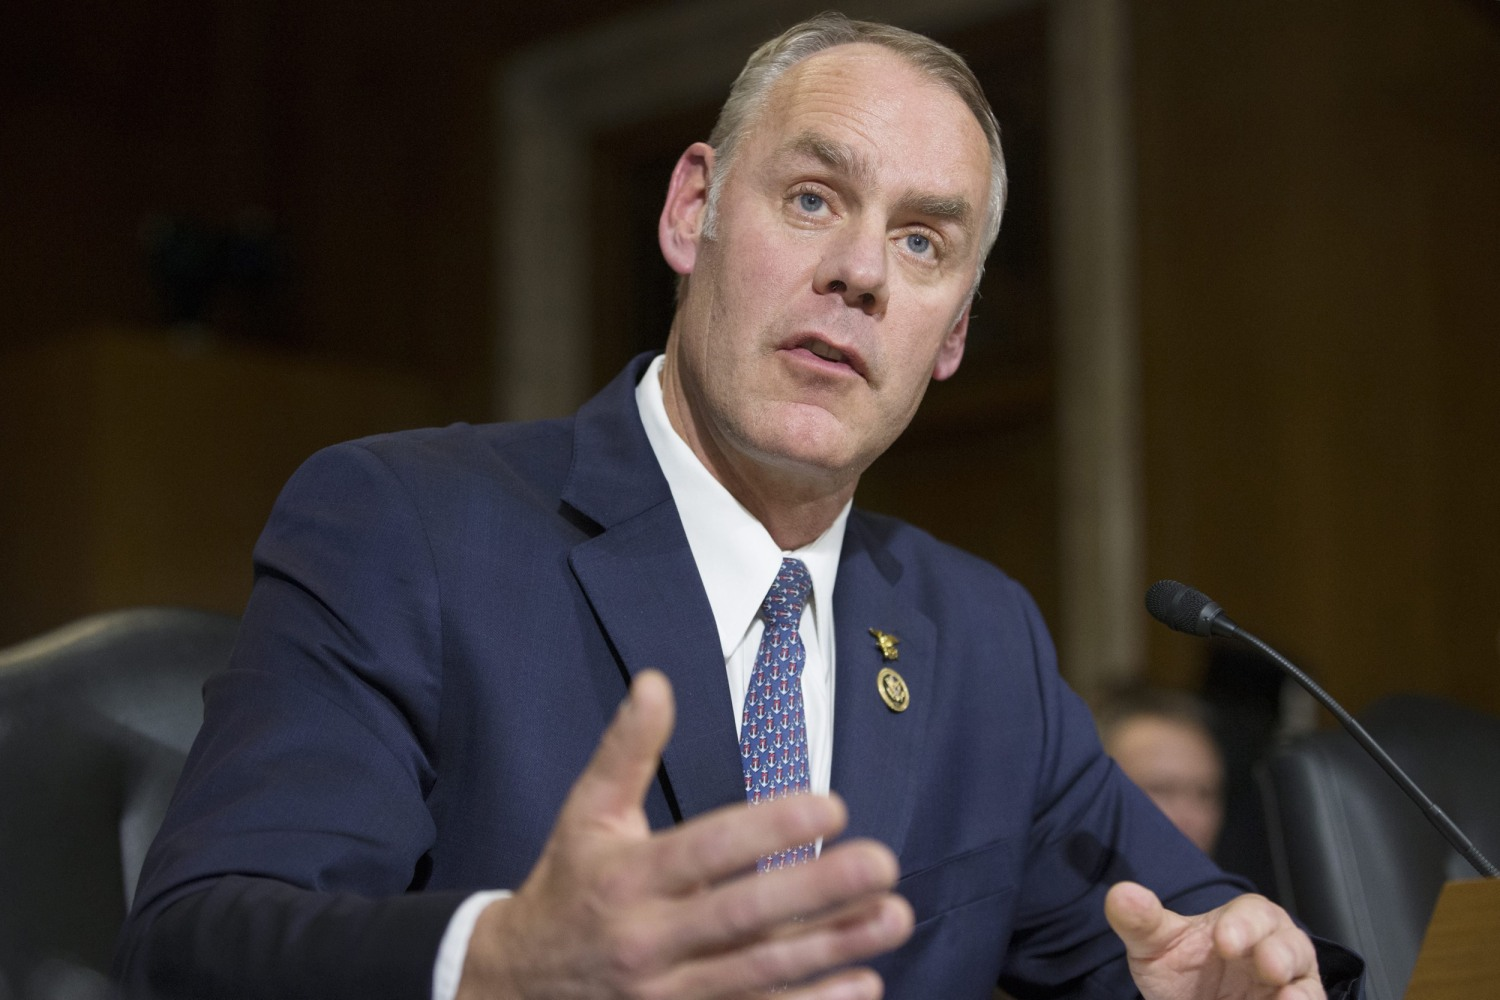 US Senate confirms Montana Rep. Zinke as Interior Secretary